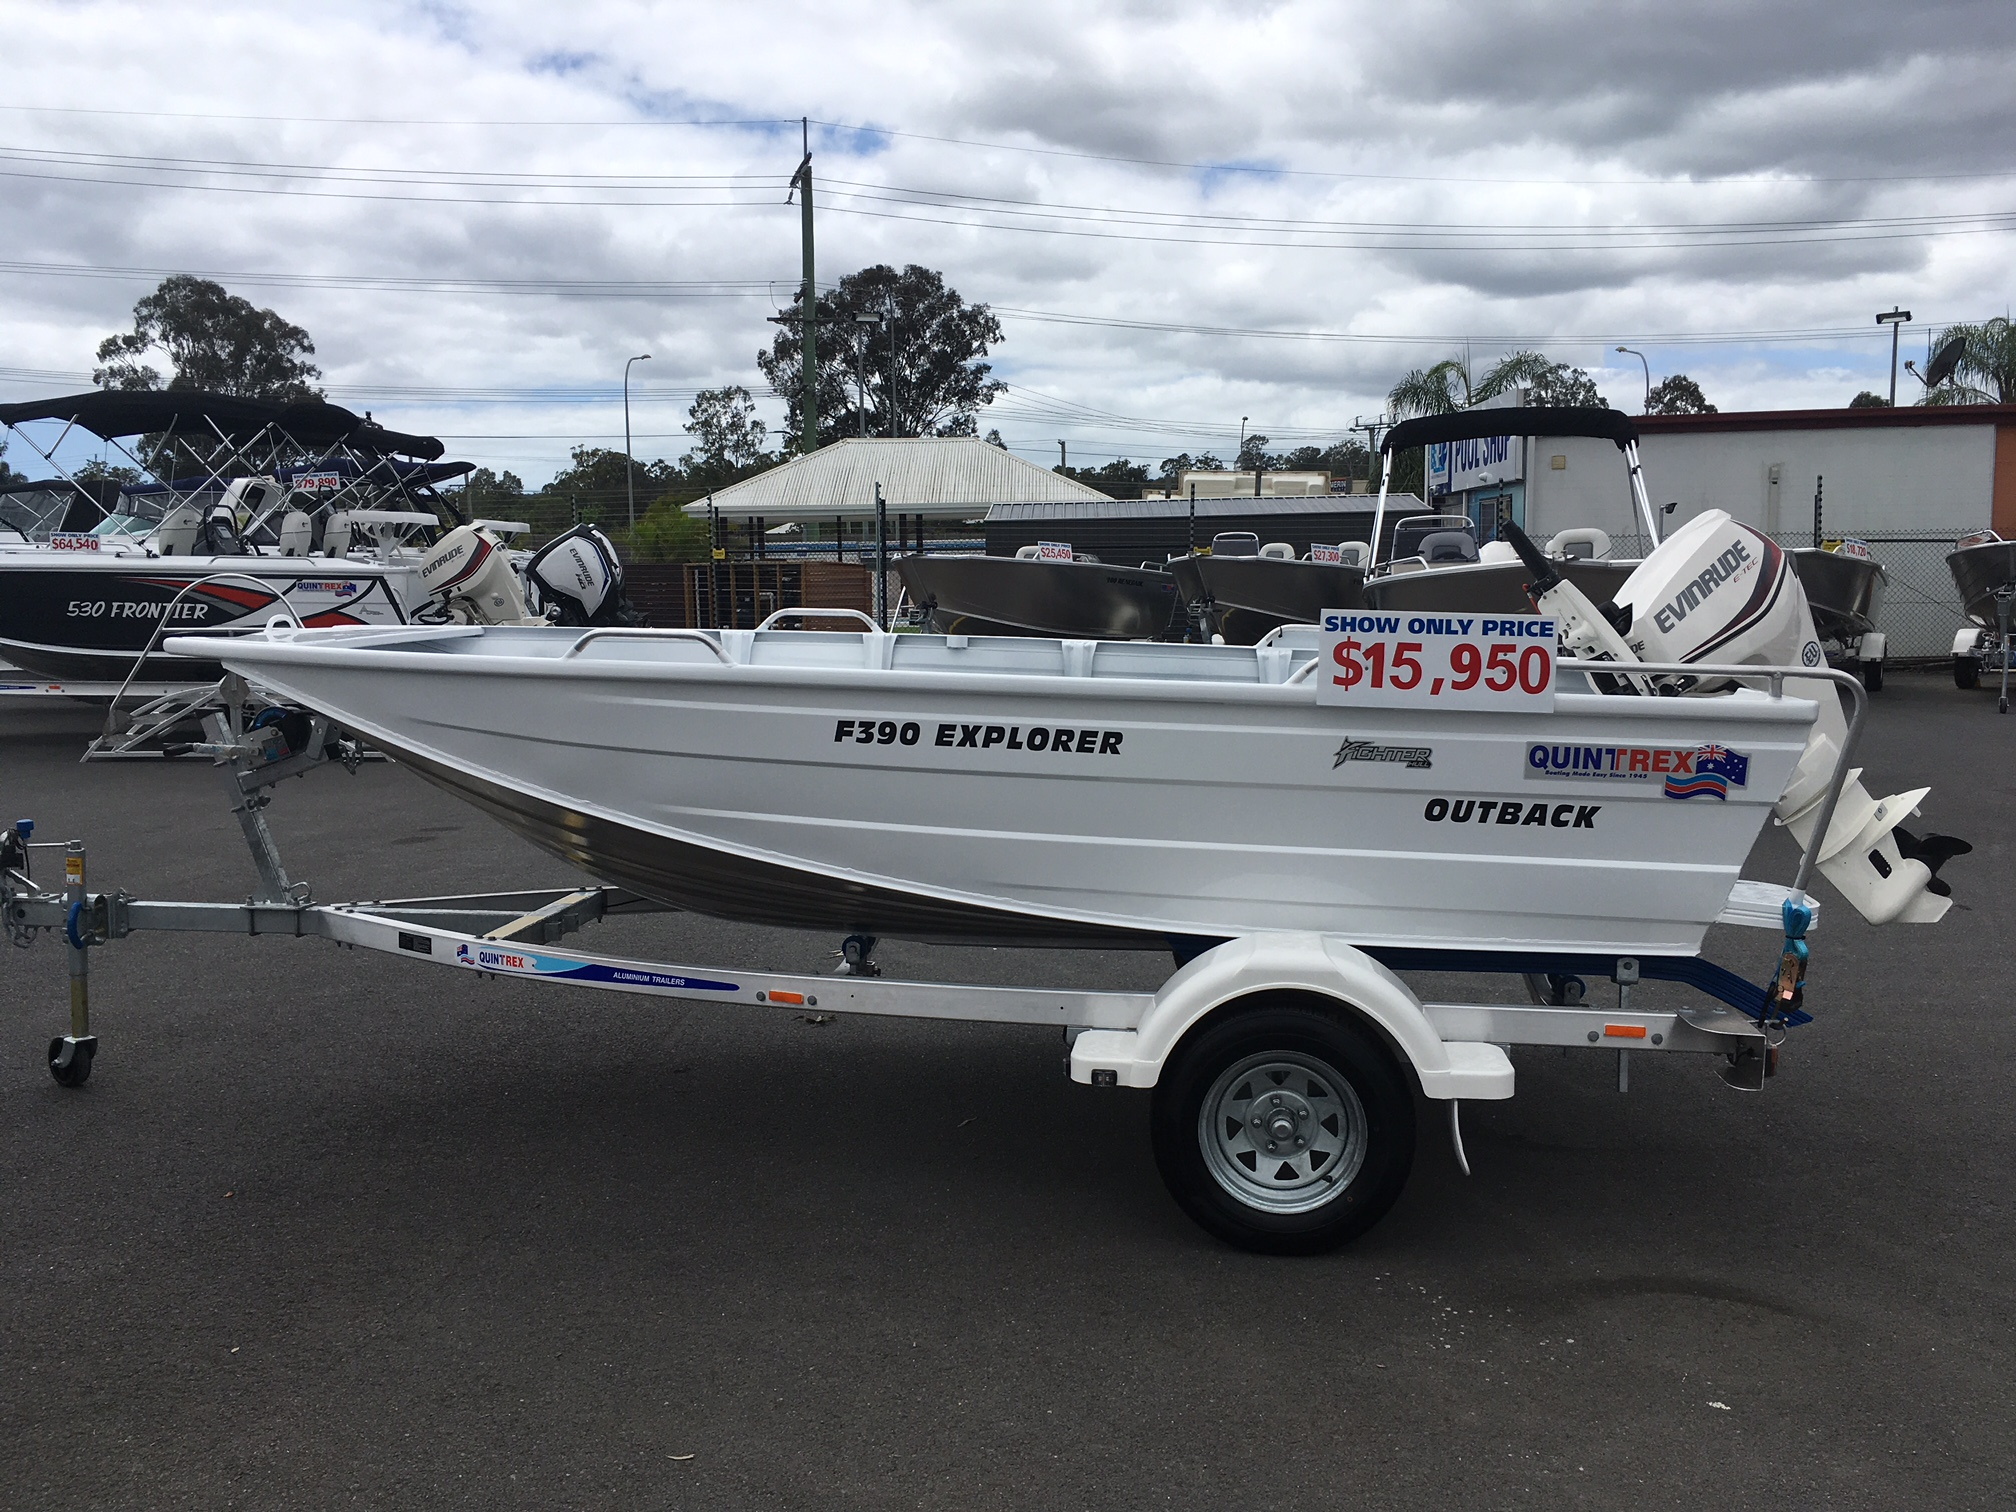 NEW QUINTREX F390 OUTBACK EXPLORER WITH 25 HP EVINRUDE FOR